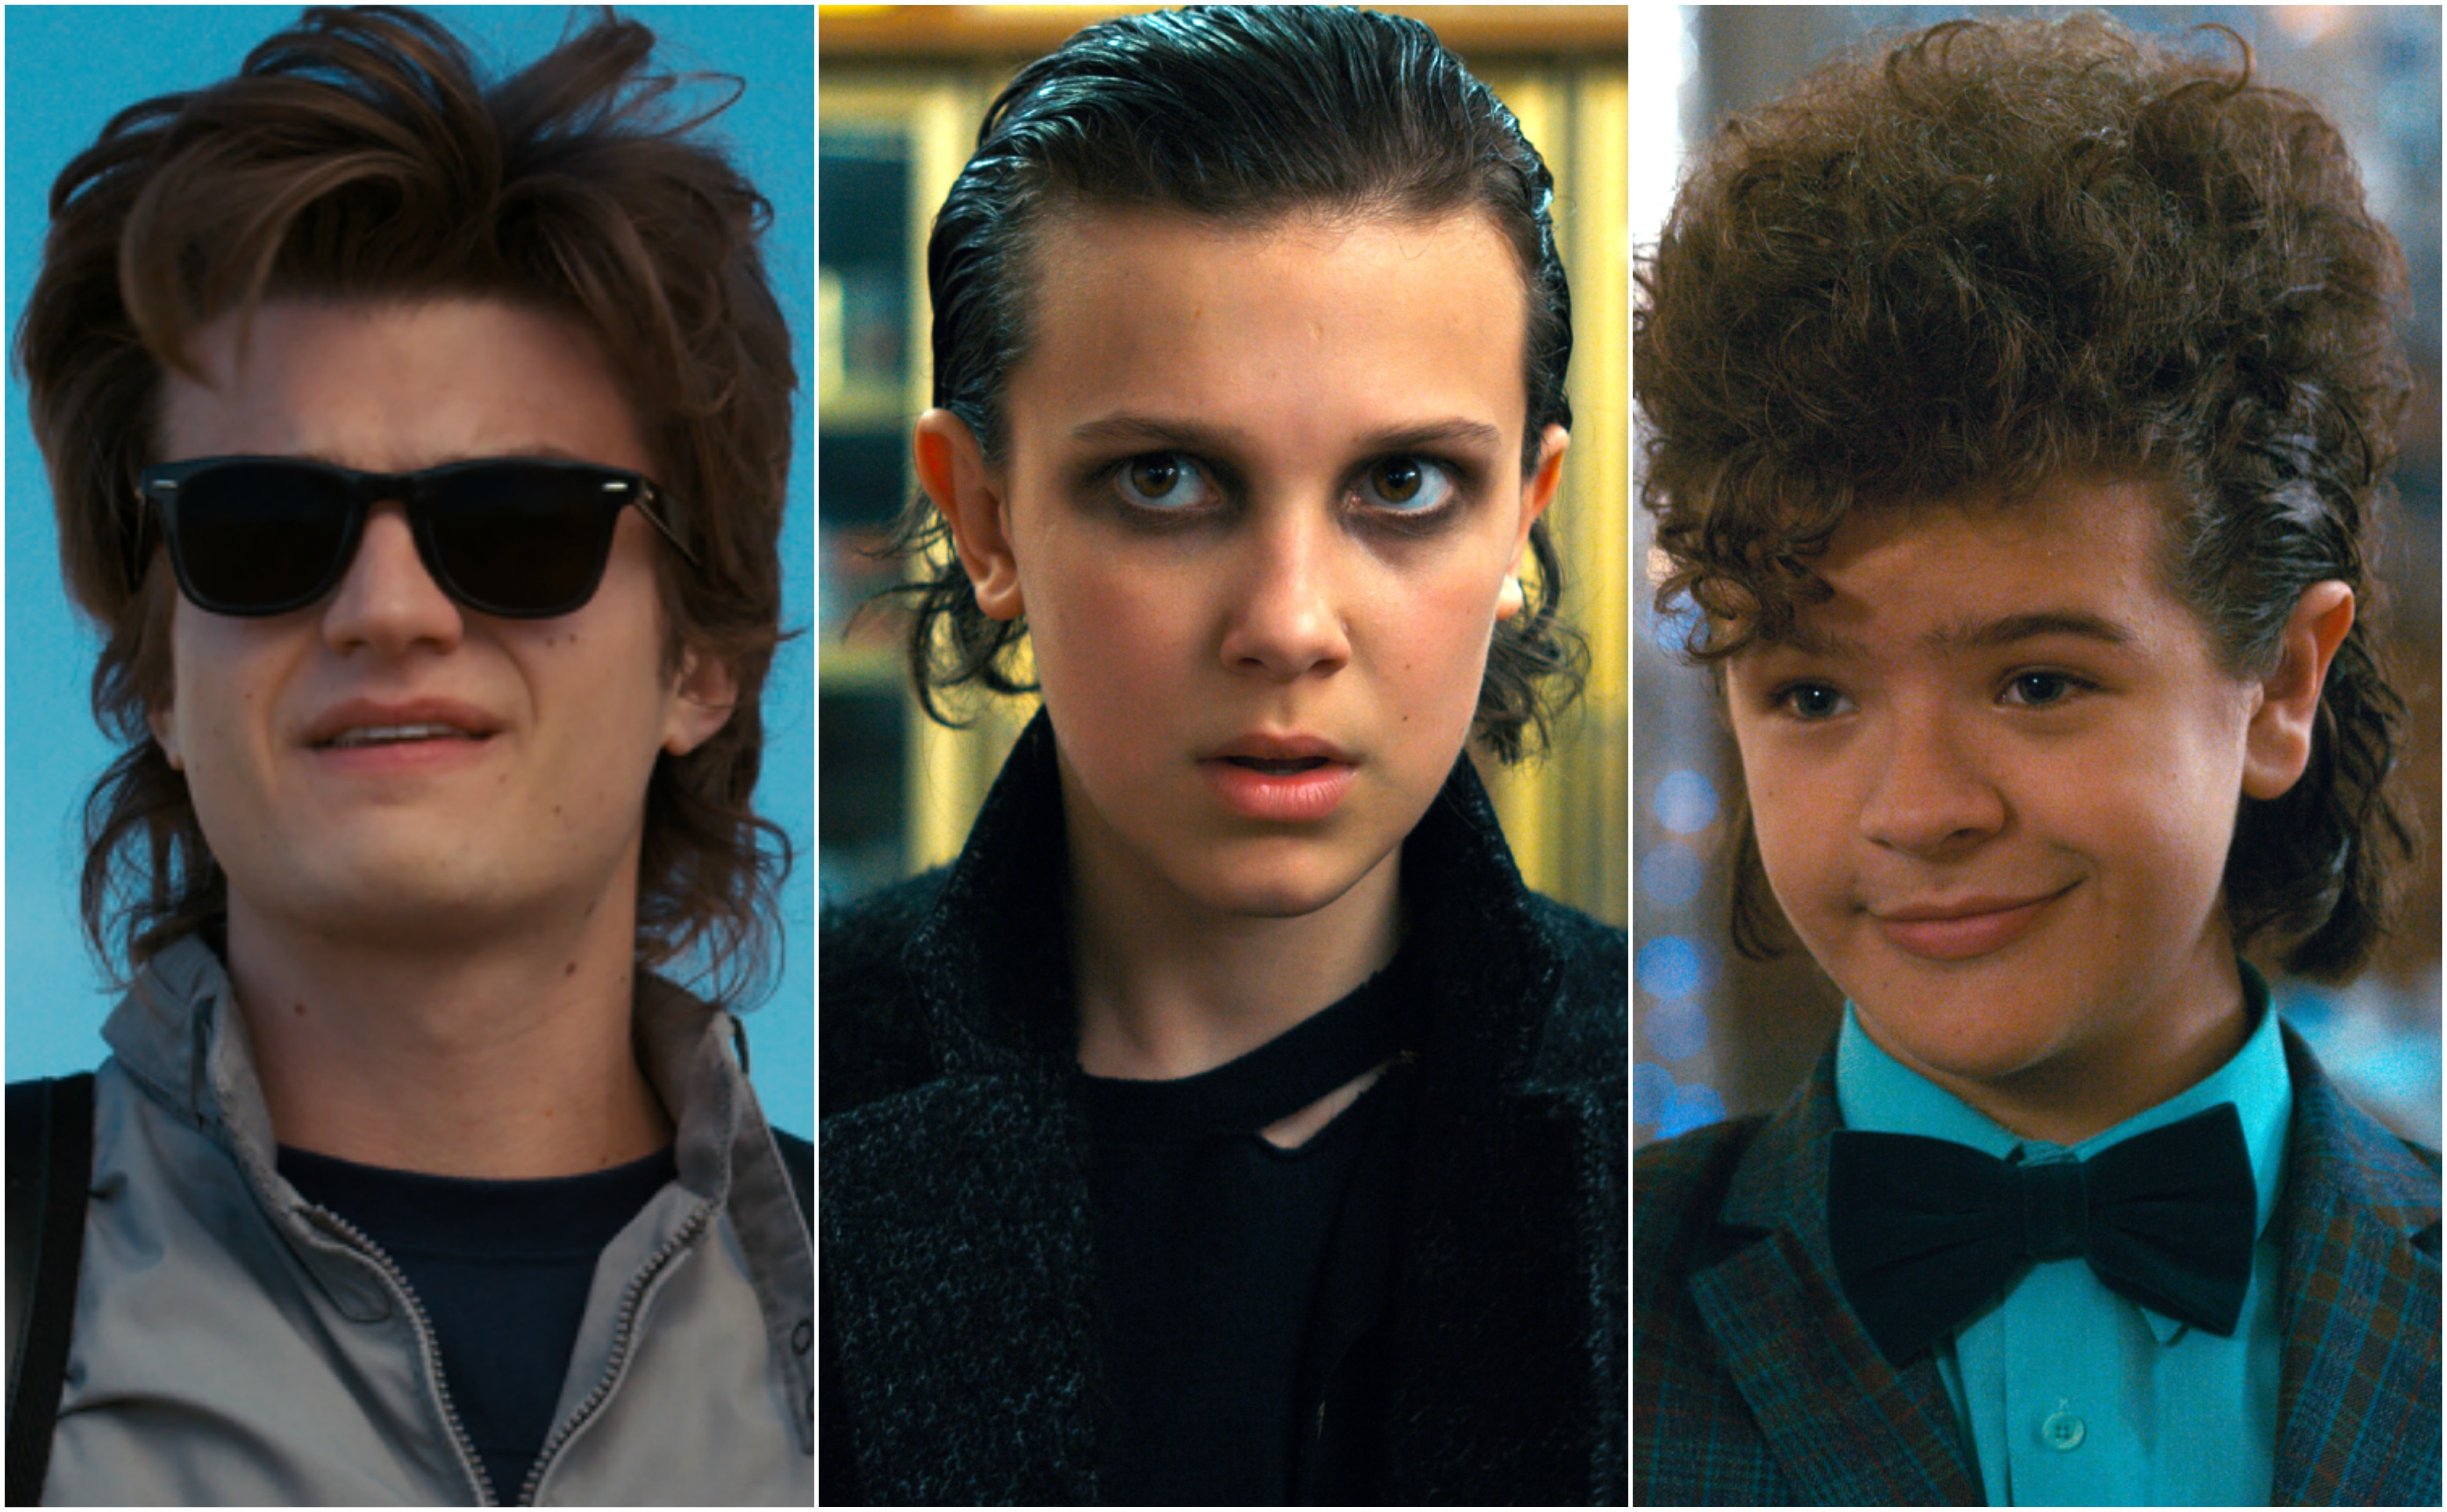 15bc3b0e57c  Stranger Things  Stylist Teases Season 3 Hair and Breaks Down 7 Iconic  Character Hairdos